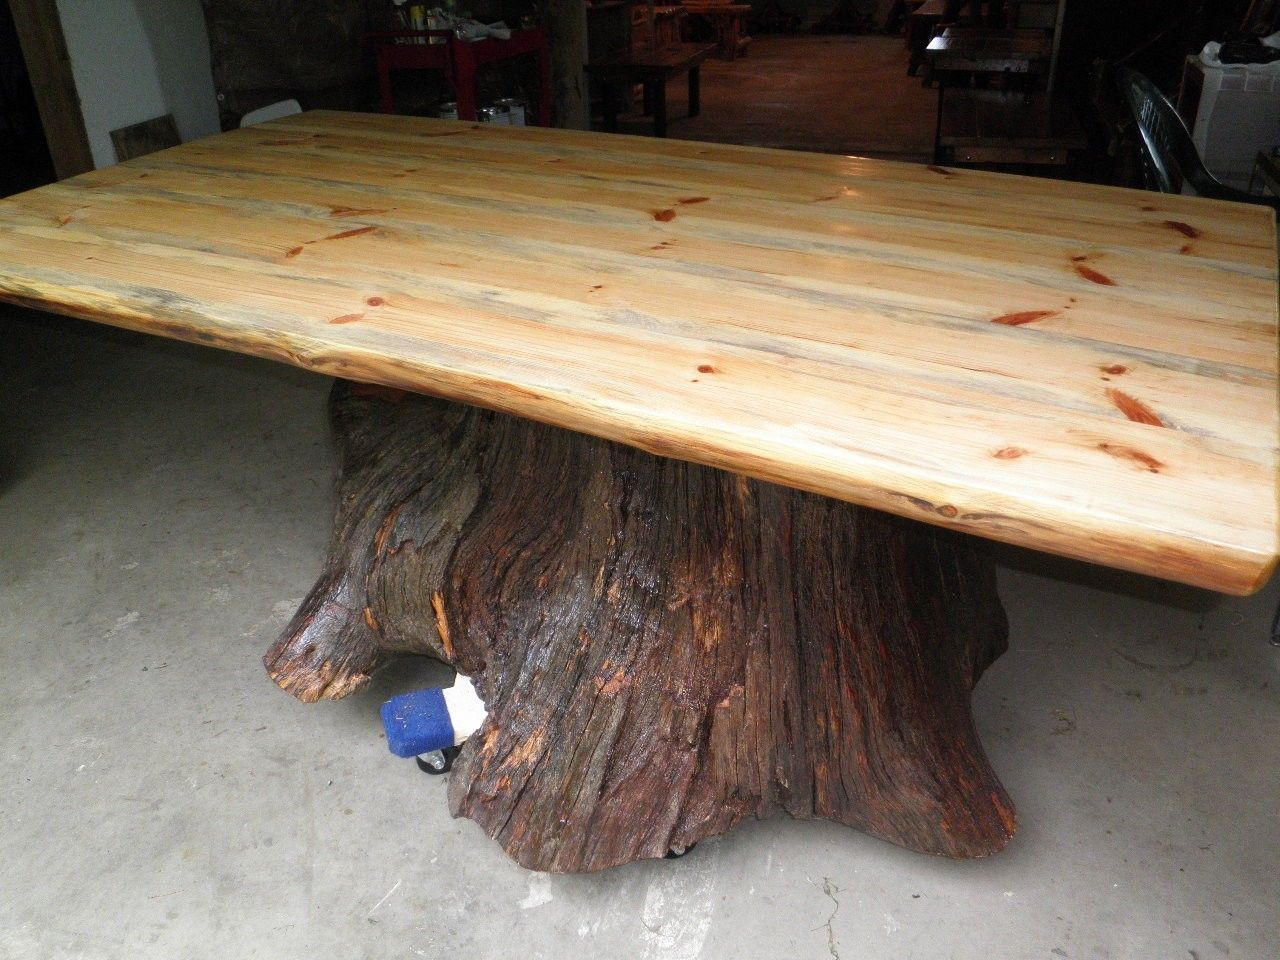 Real Oak Tree Trunk Kitchen Dining Table One Of Our Current